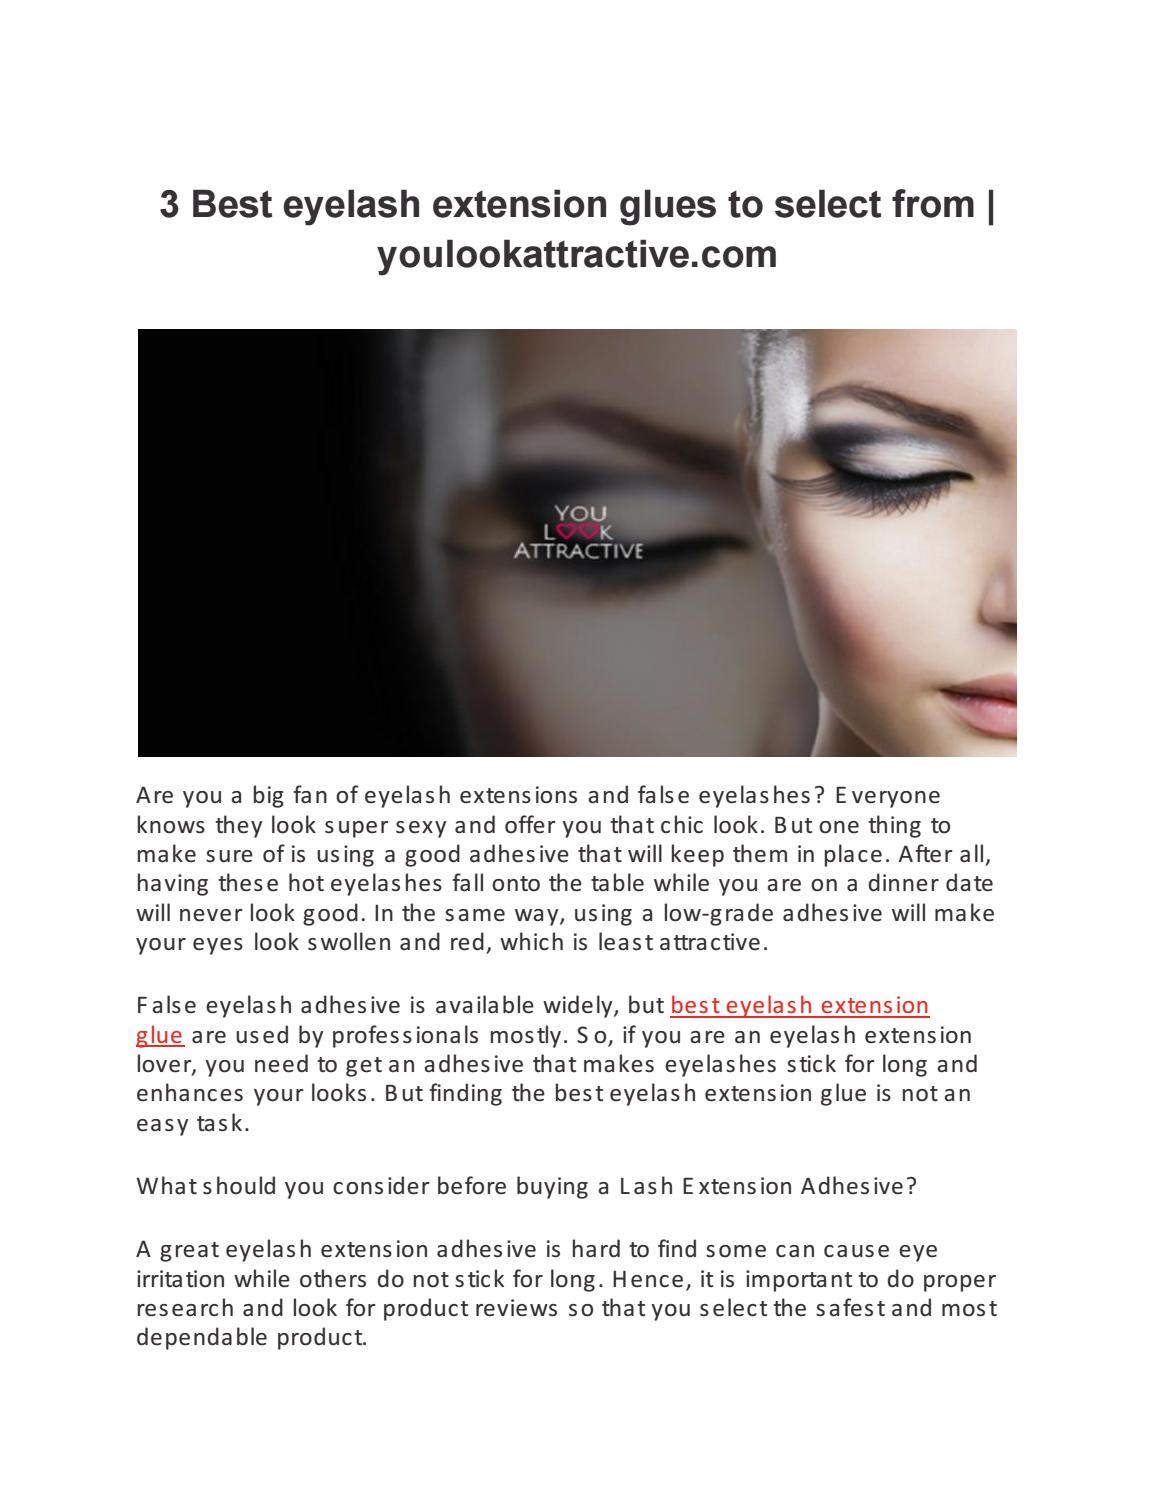 3 Best Eyelash Extension Glues To Select From Youlookattractive Com